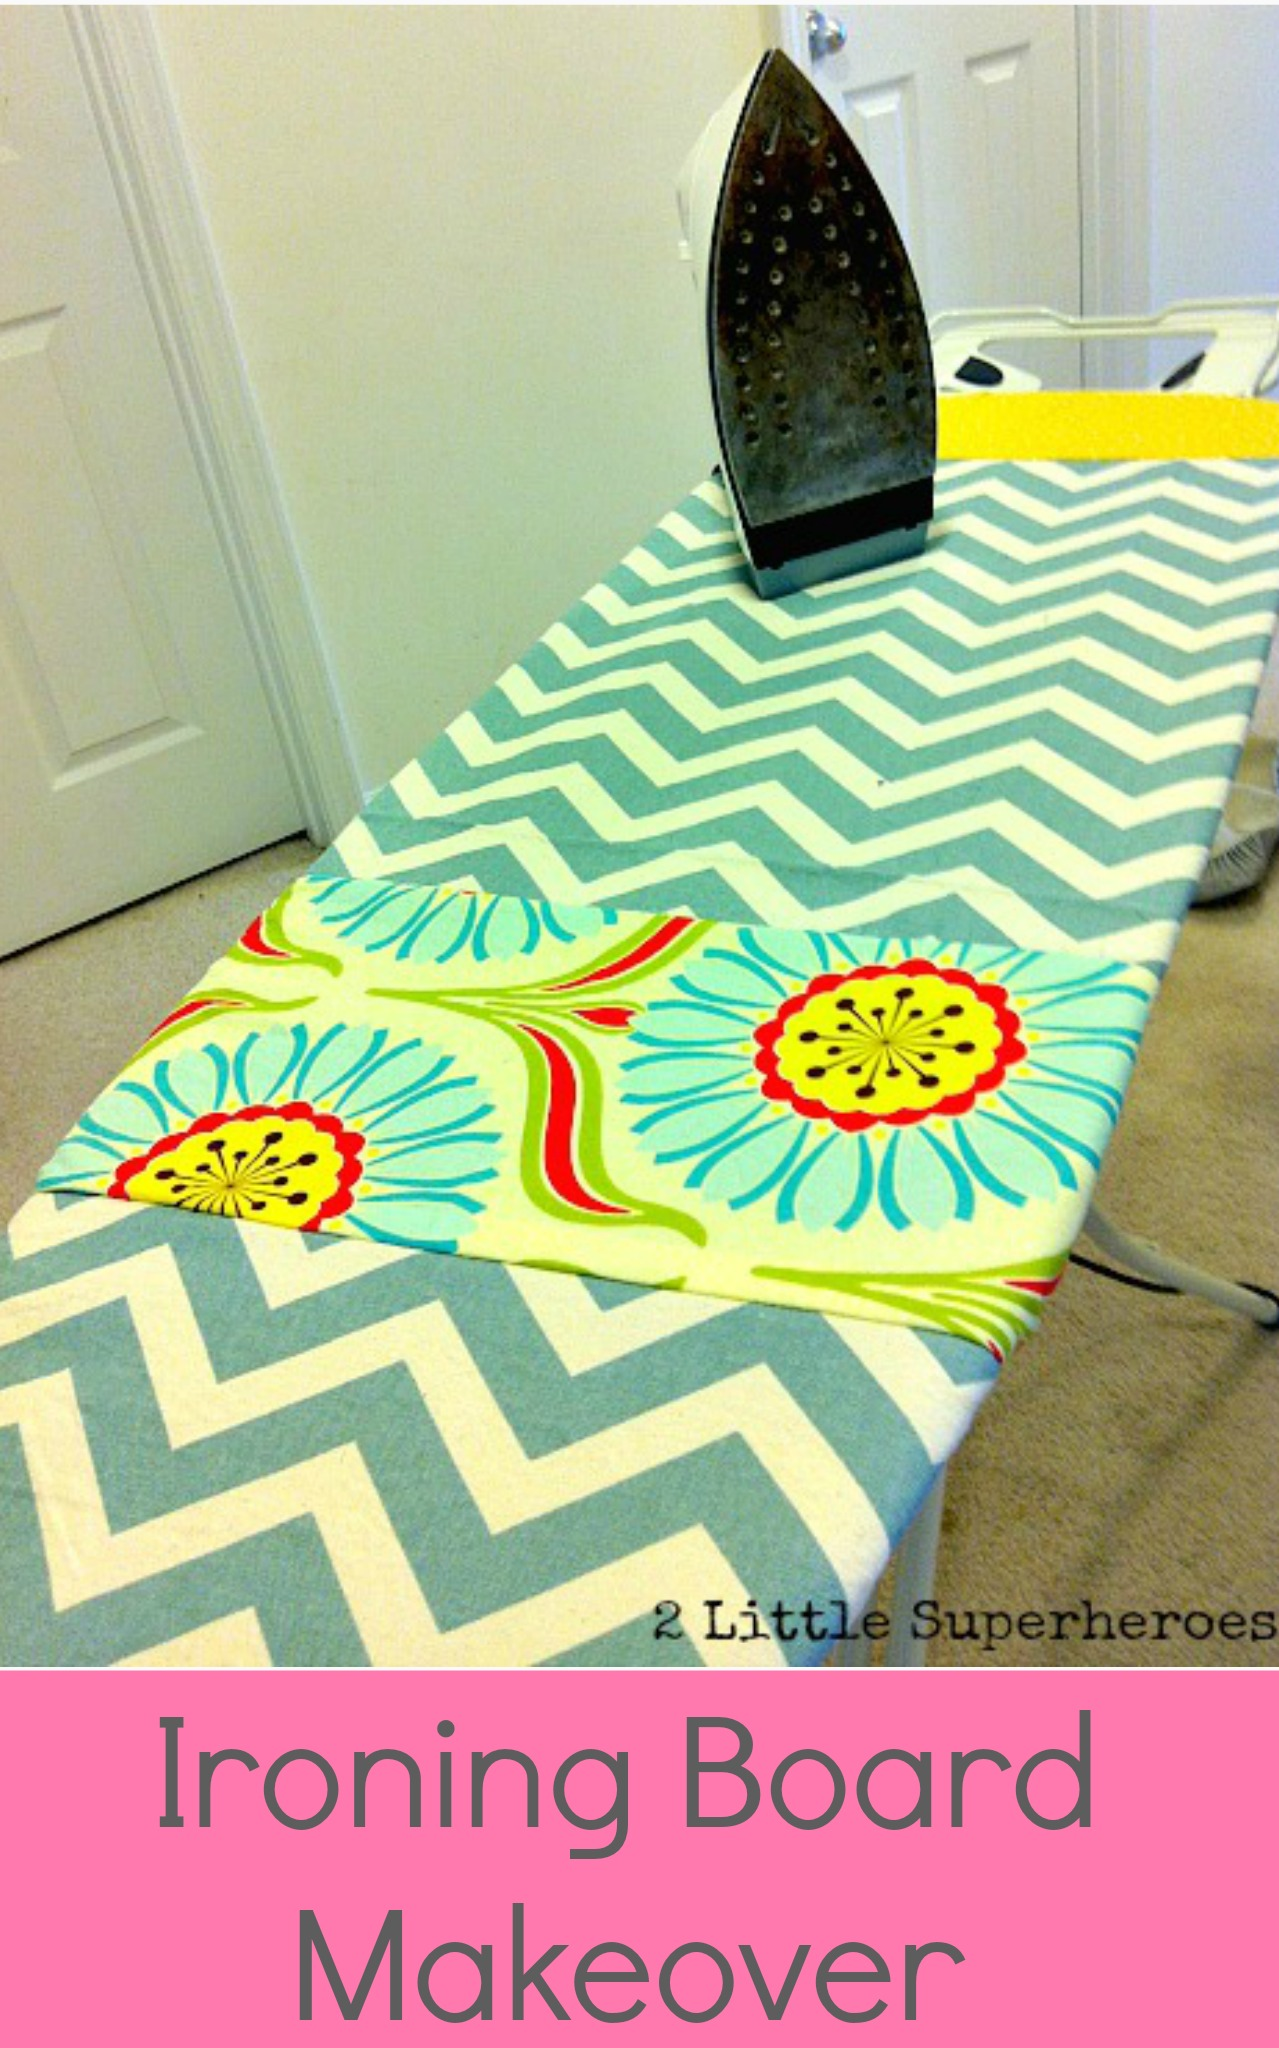 diy ironing board cover 2 little supeheroes2 little. Black Bedroom Furniture Sets. Home Design Ideas